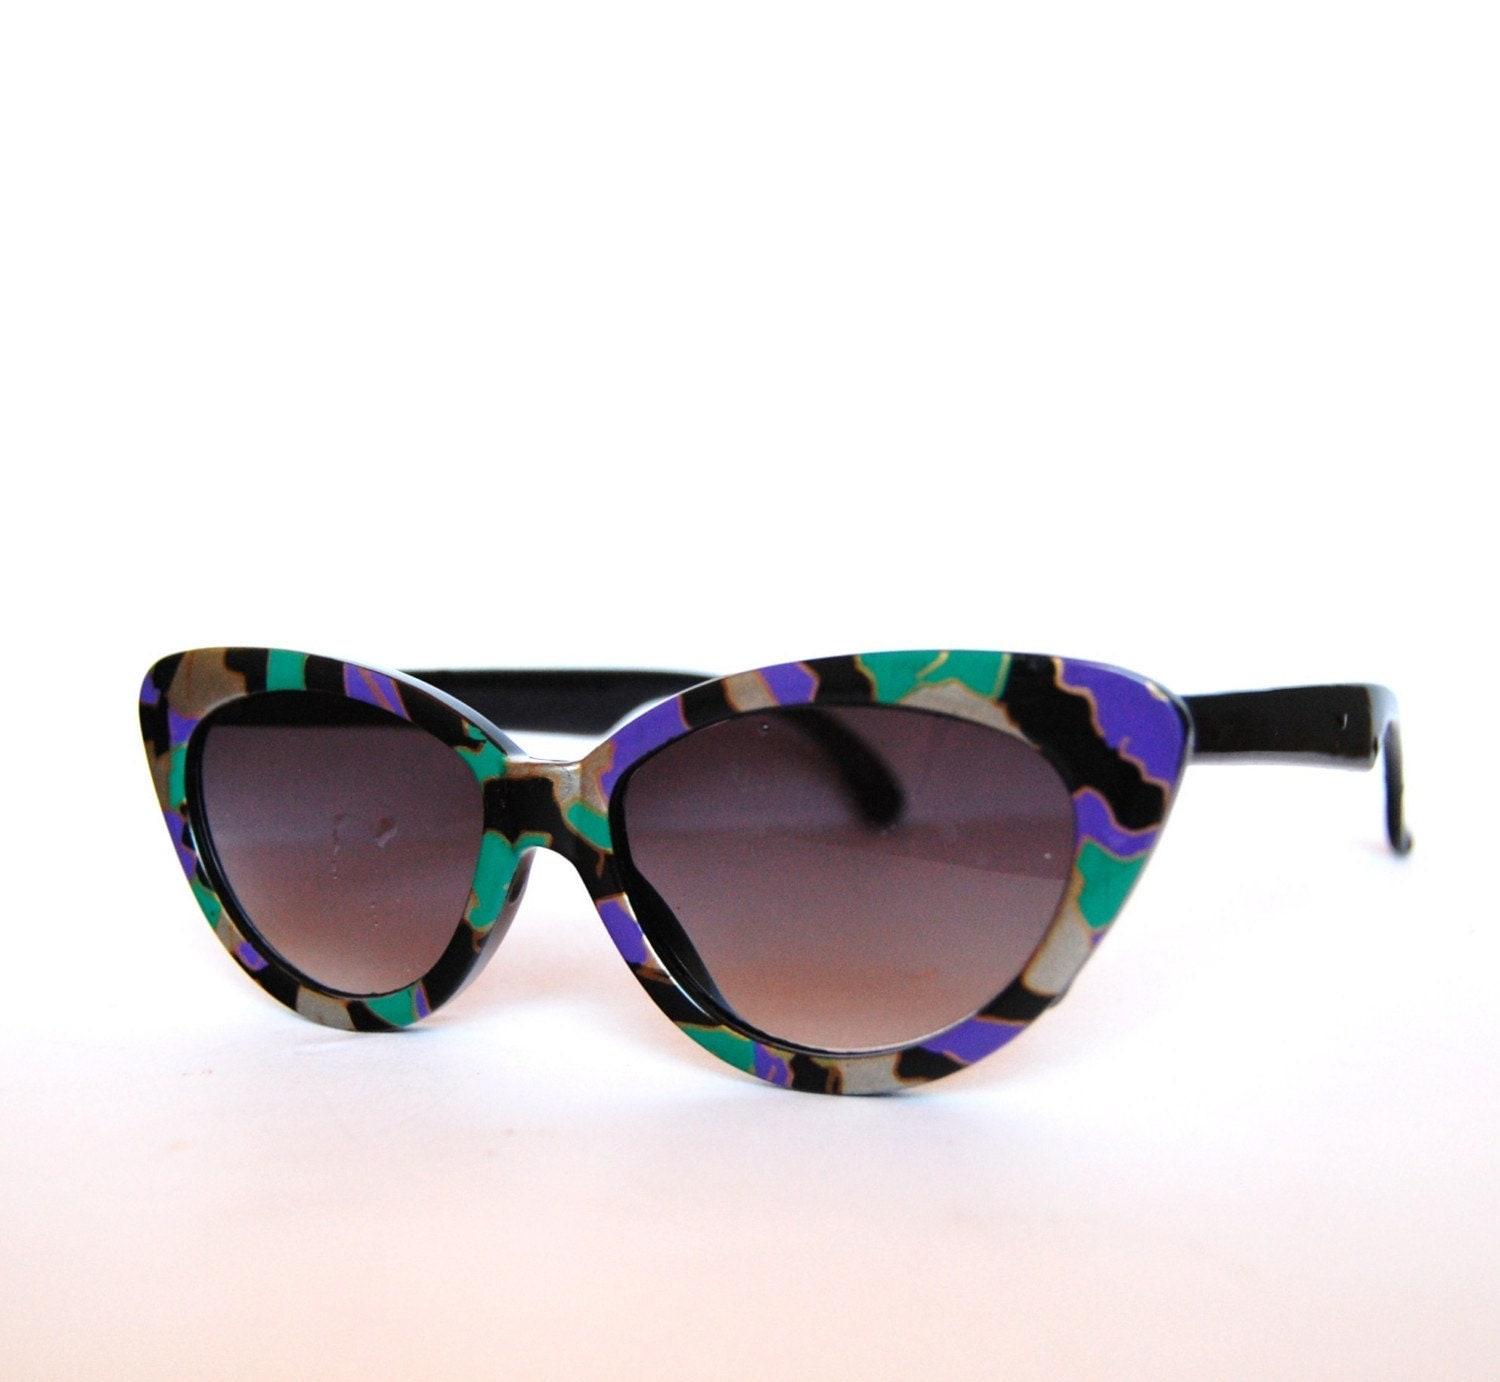 Vintage funky cat eye sunglasses Germany by RetroEyewear on Etsy from etsy.com